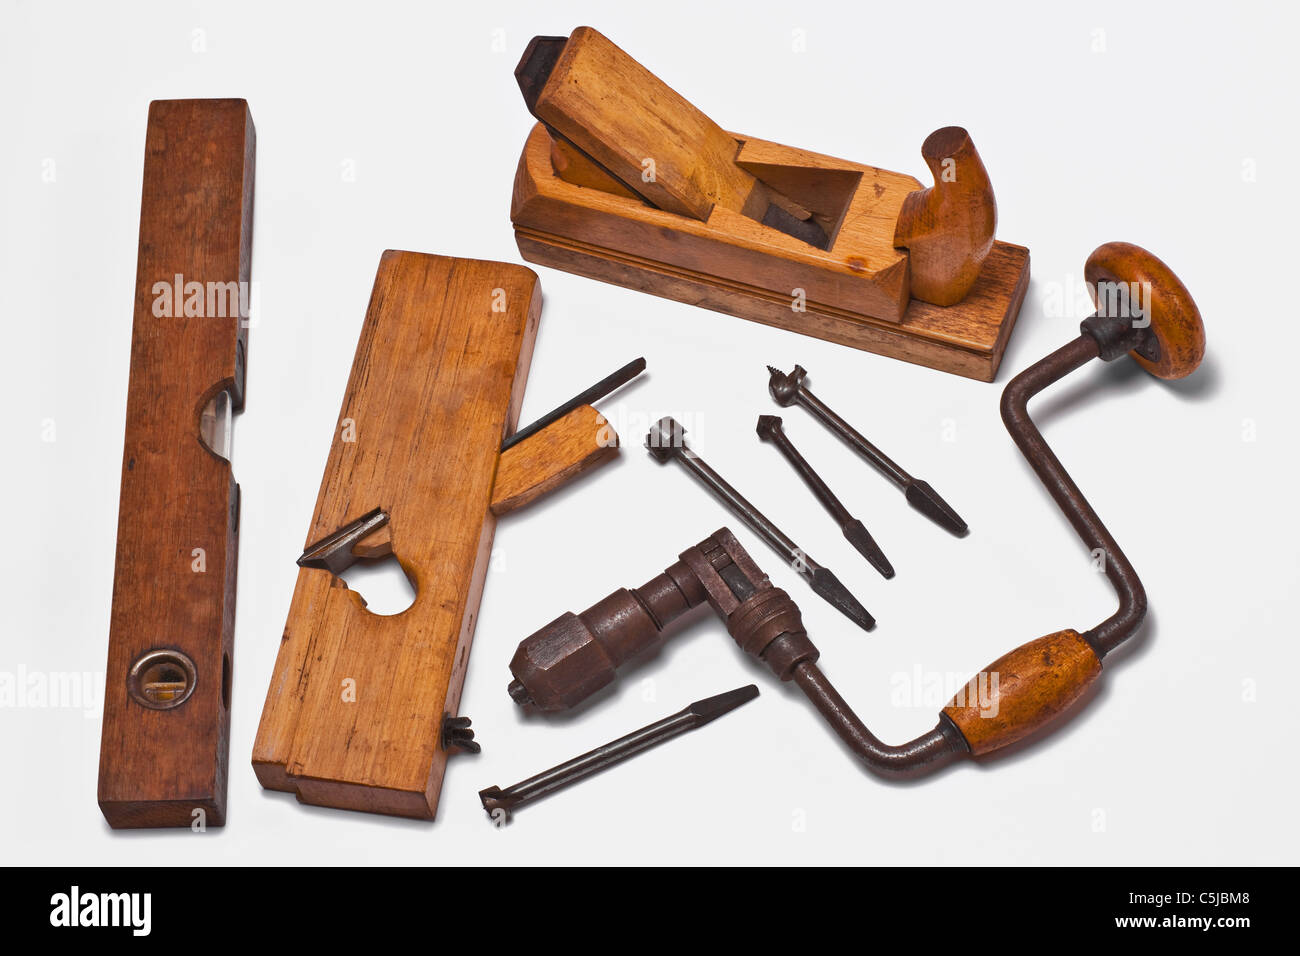 Old Woodworking Tools Stock Photos Old Woodworking Tools Stock